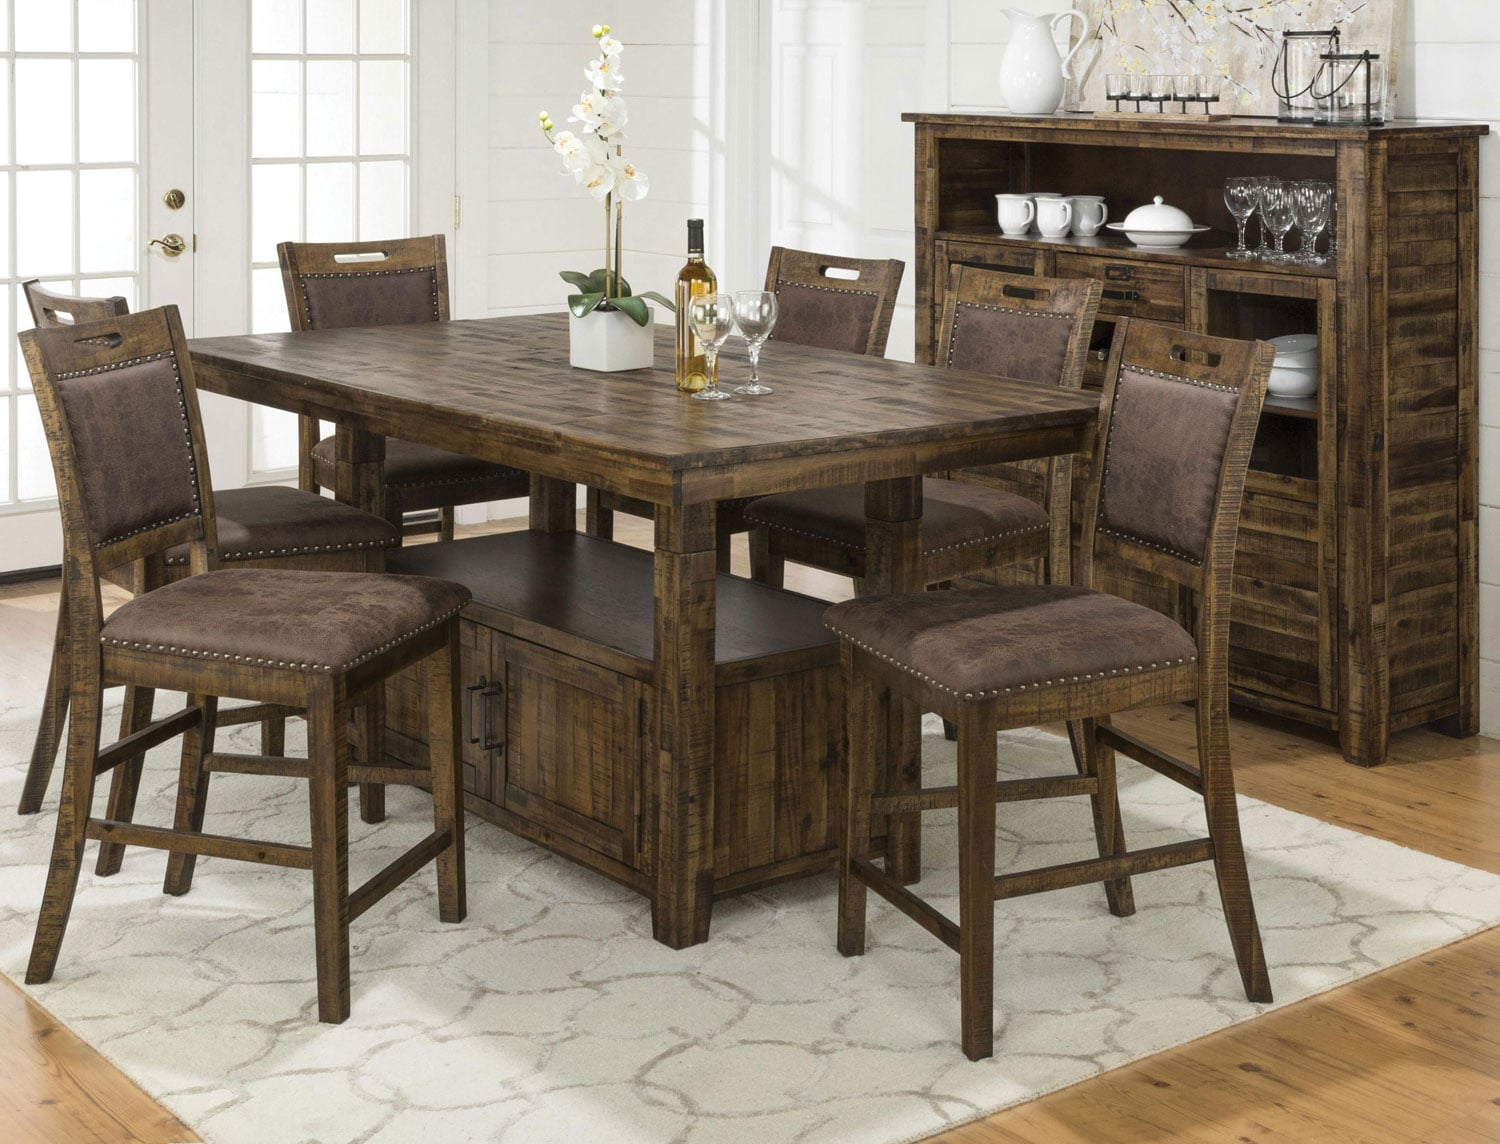 Reign Adjustable-Height Table and 4 Counter-Height Chairs